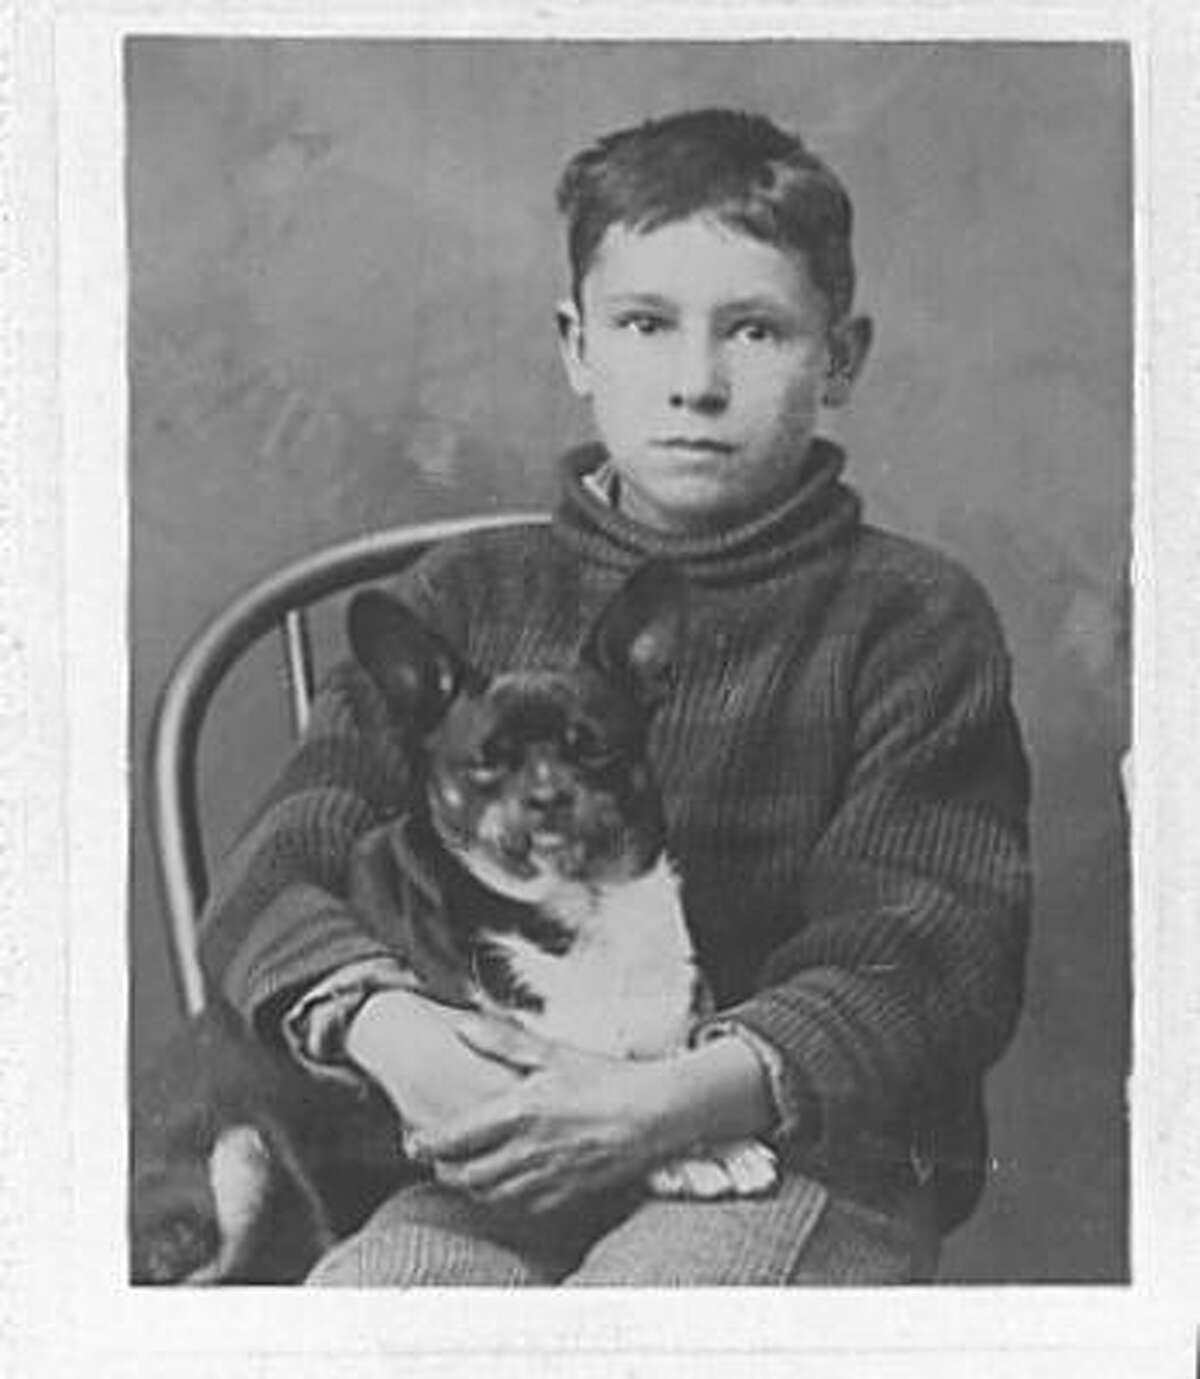 The dog's name is Dan. Circa 1895. Upload your photos of any era here.